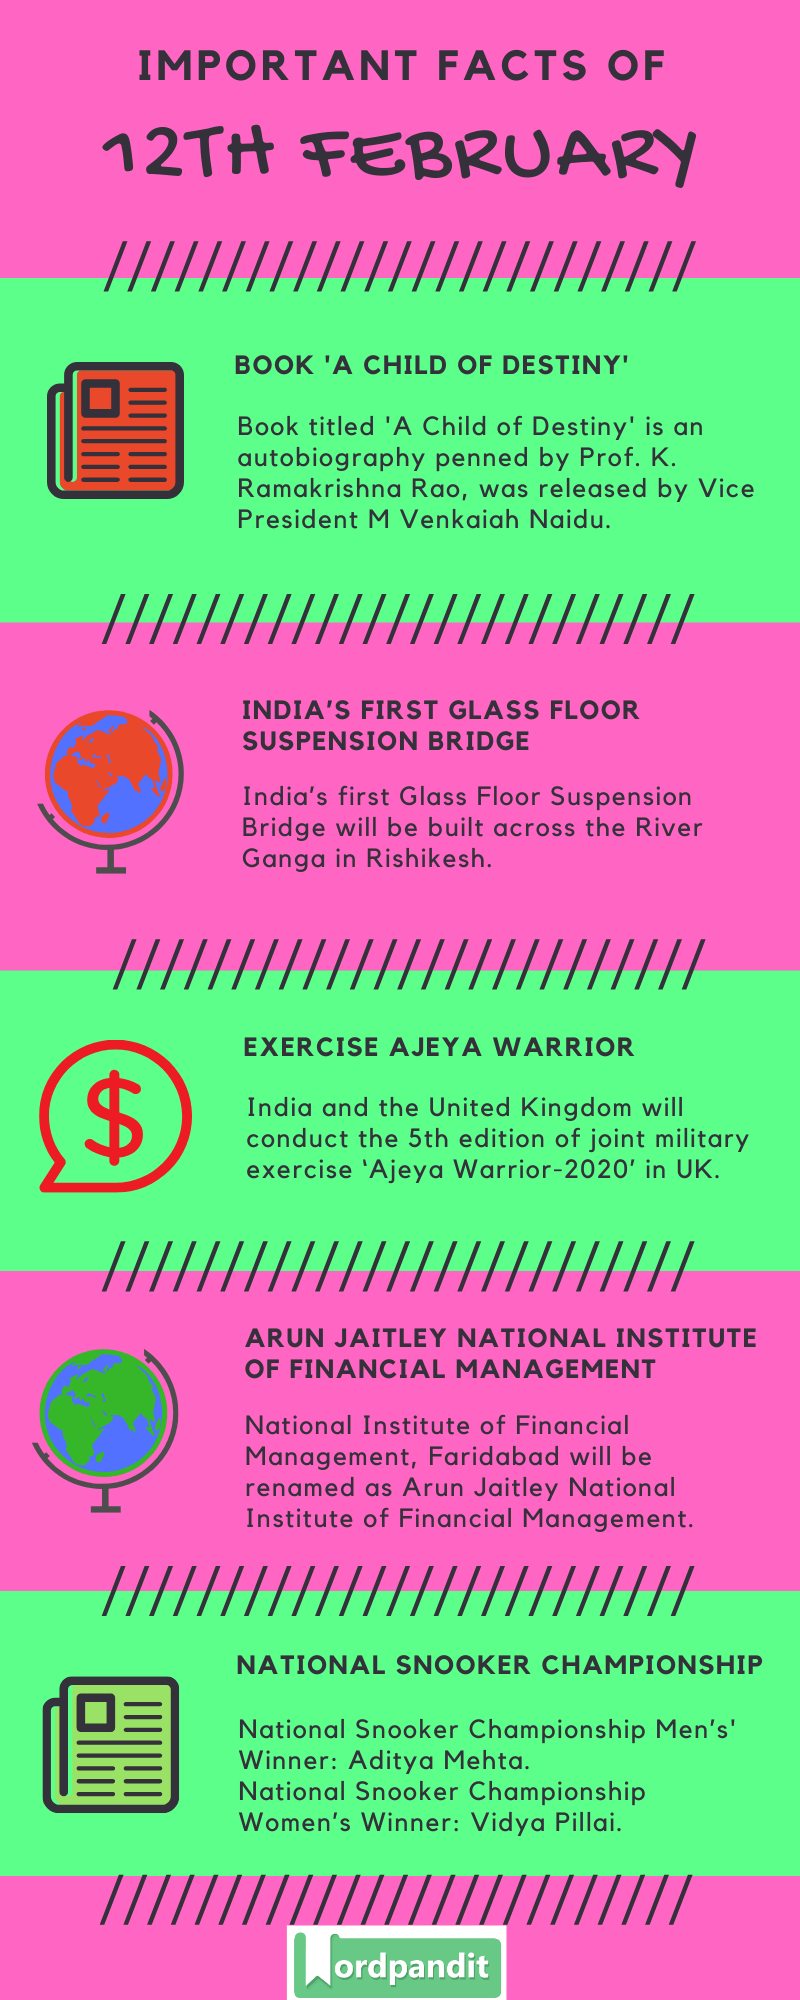 Daily Current Affairs 12 February 2020 Current Affairs Quiz 12 February 2020 Current Affairs Infographic